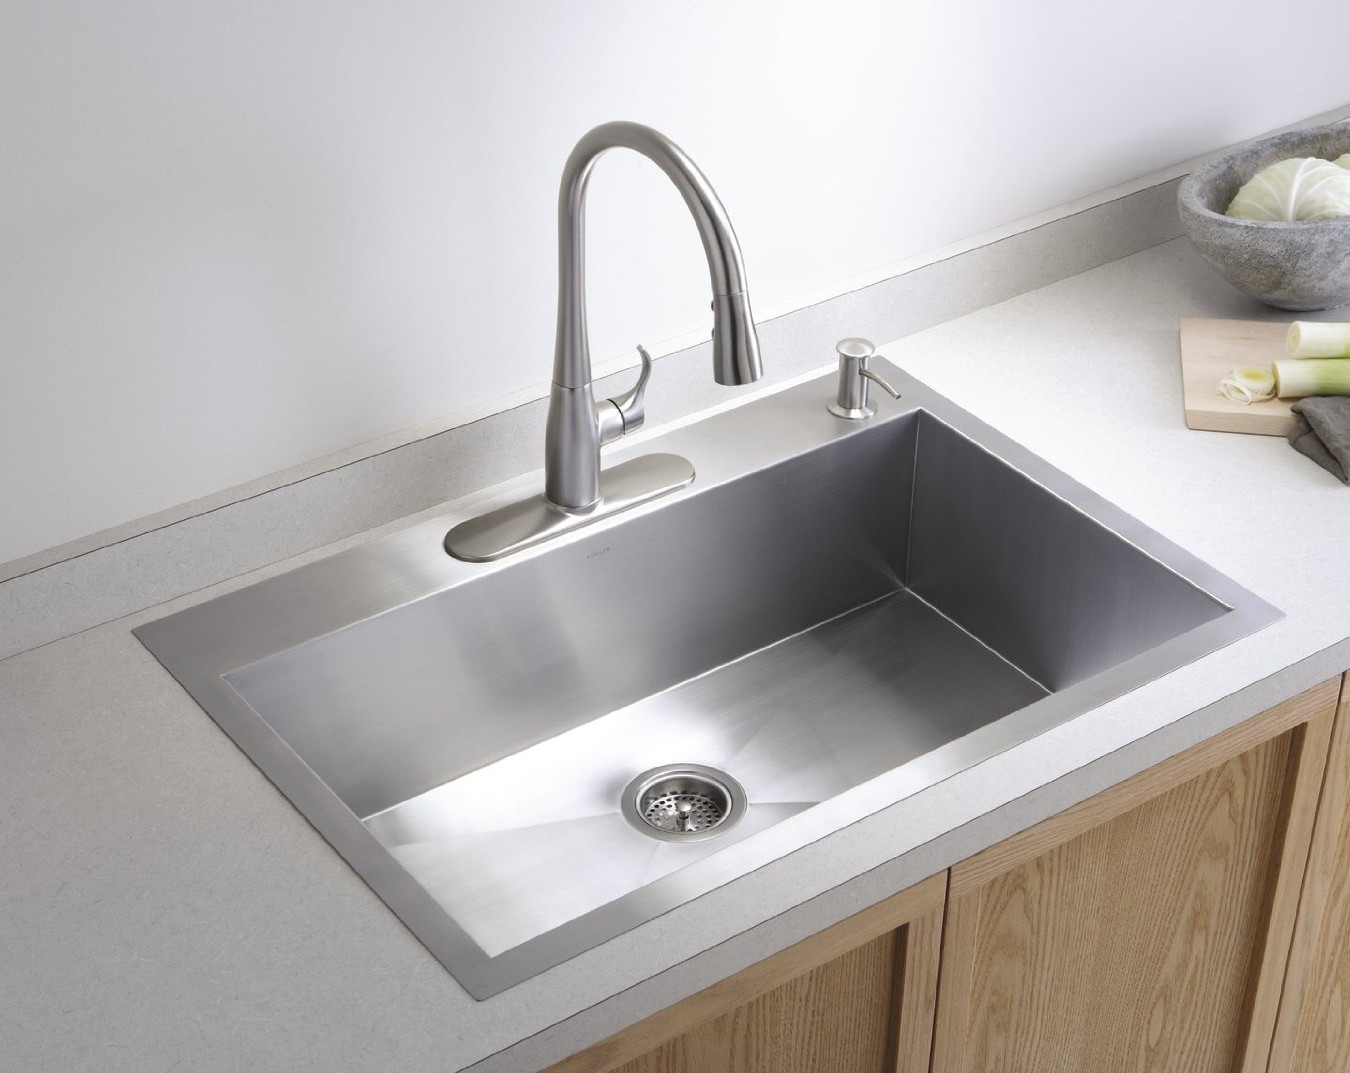 Drop In Sinks   Minimalist Stainless Kohler Vault Drop In Sink   Kohler Via  Atticmag